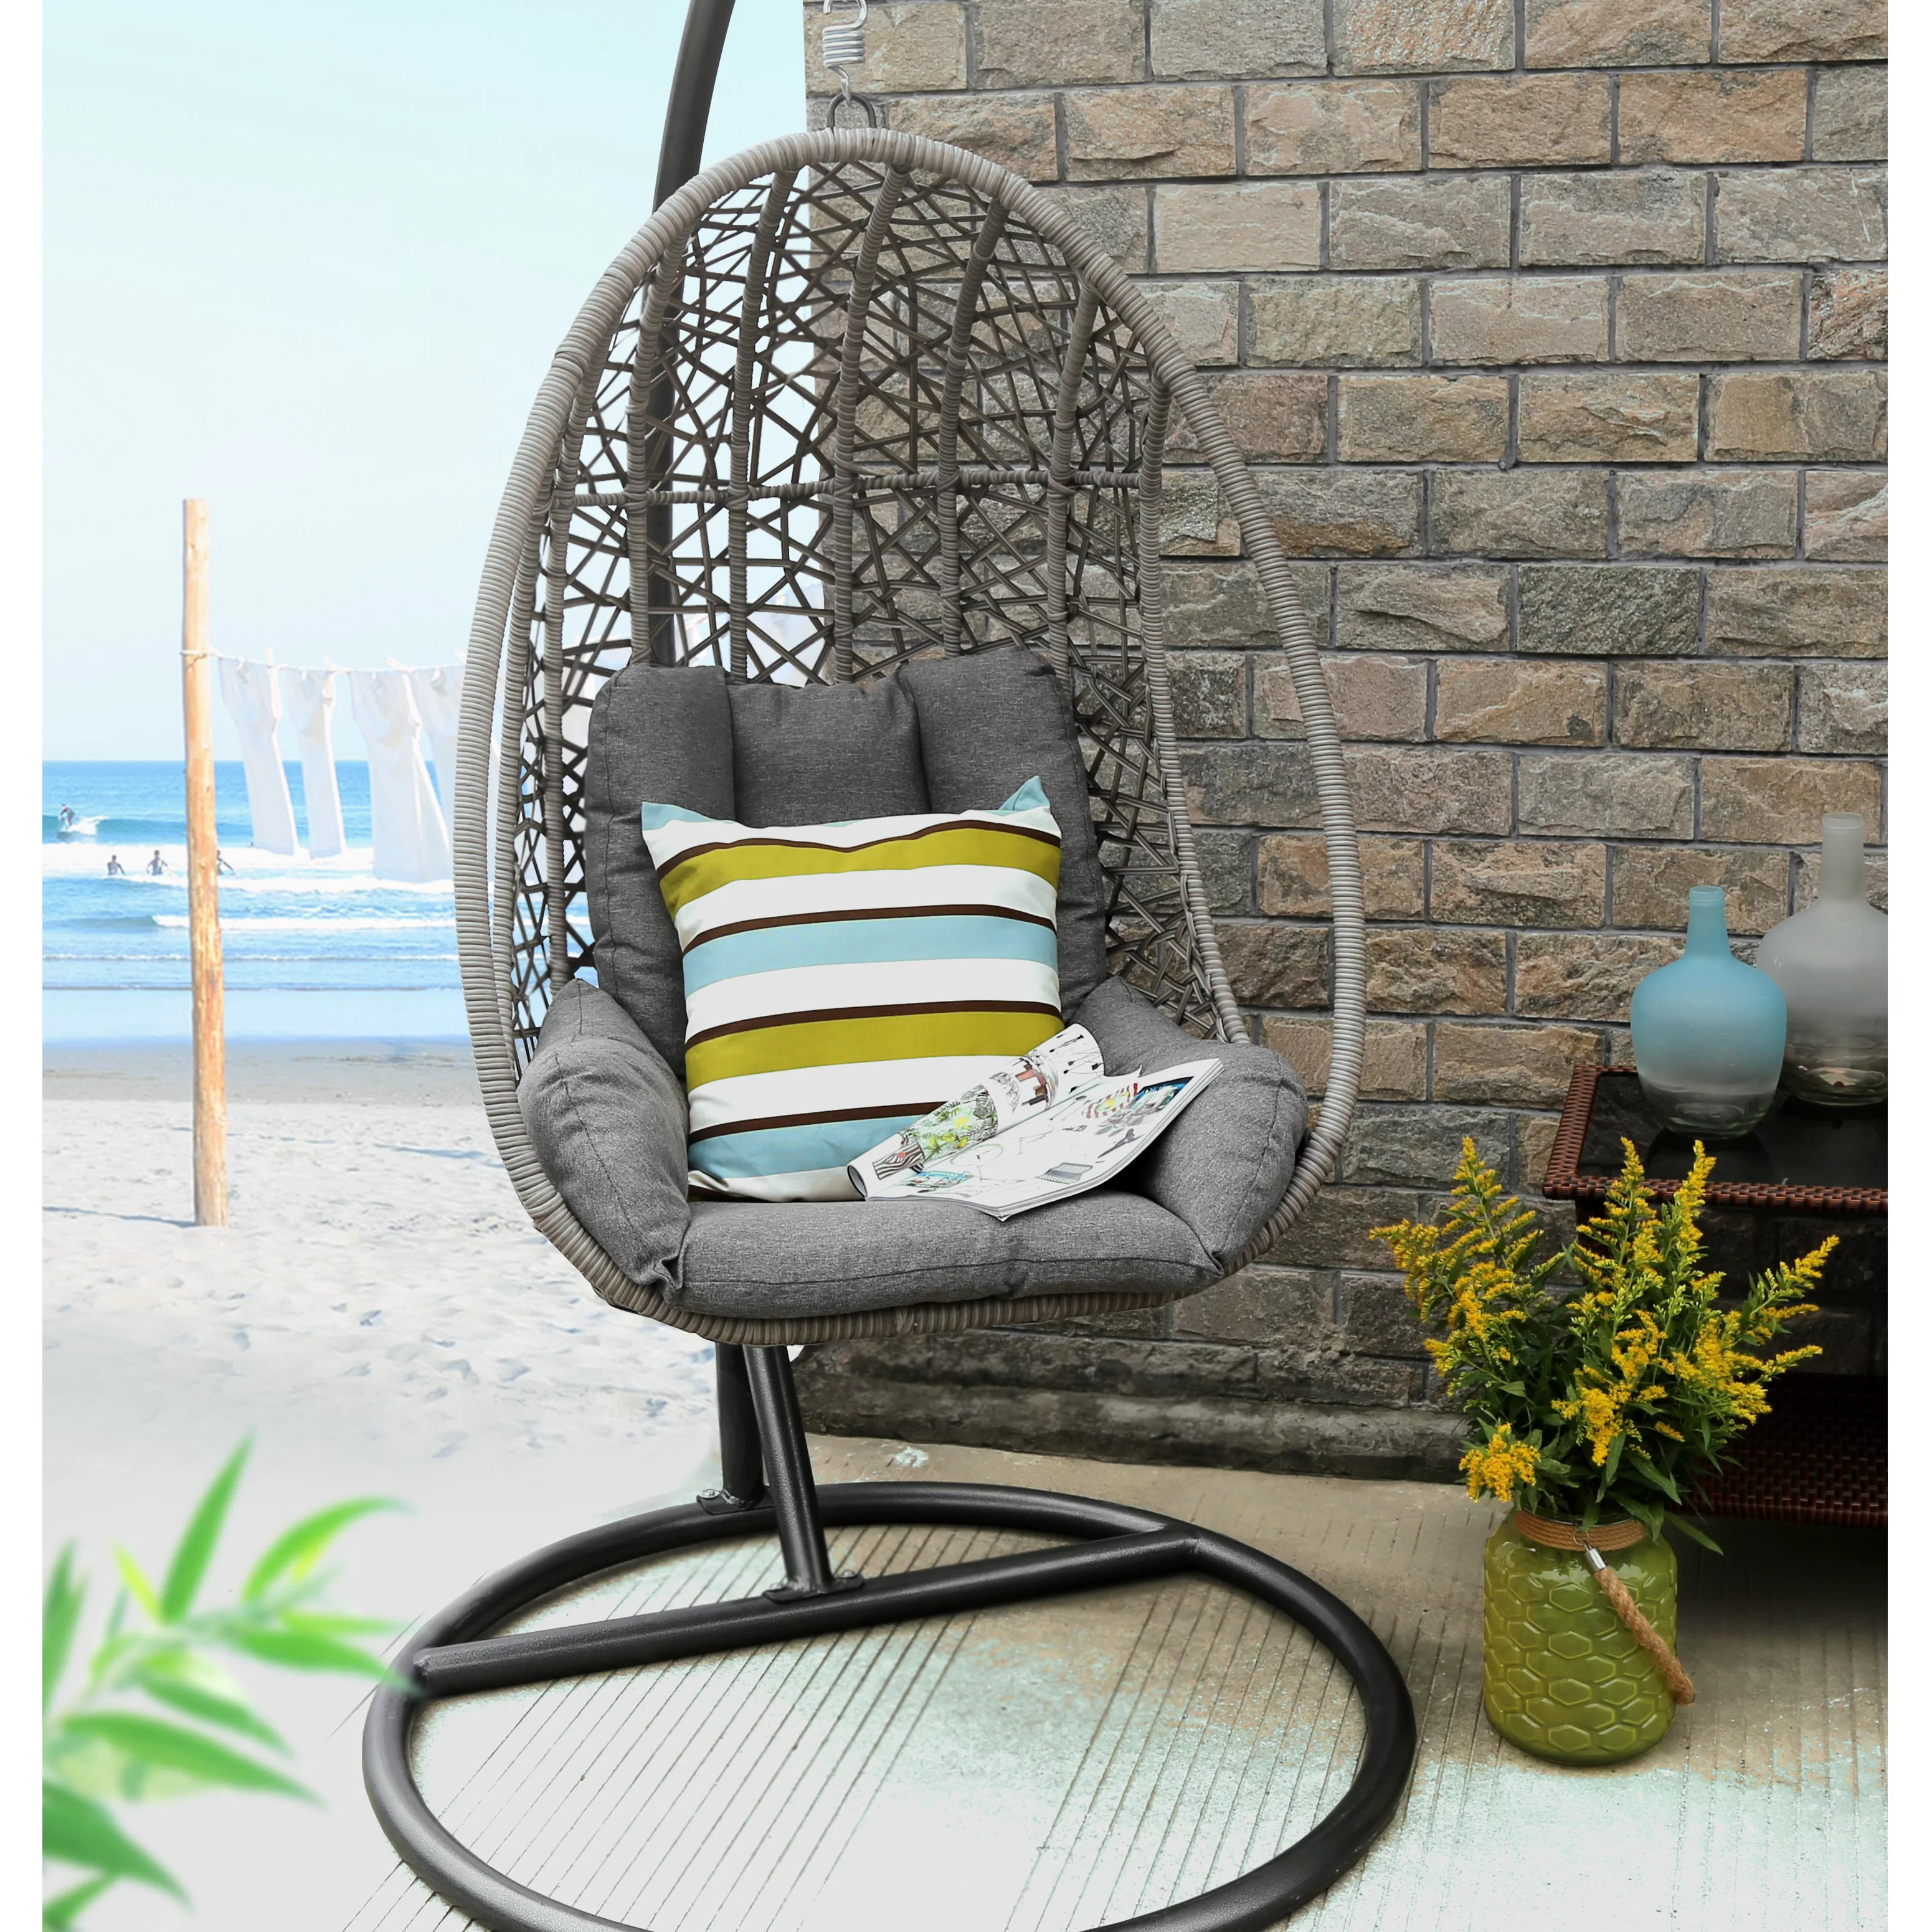 Swinging Chair Outdoor Swing Chair With Stand